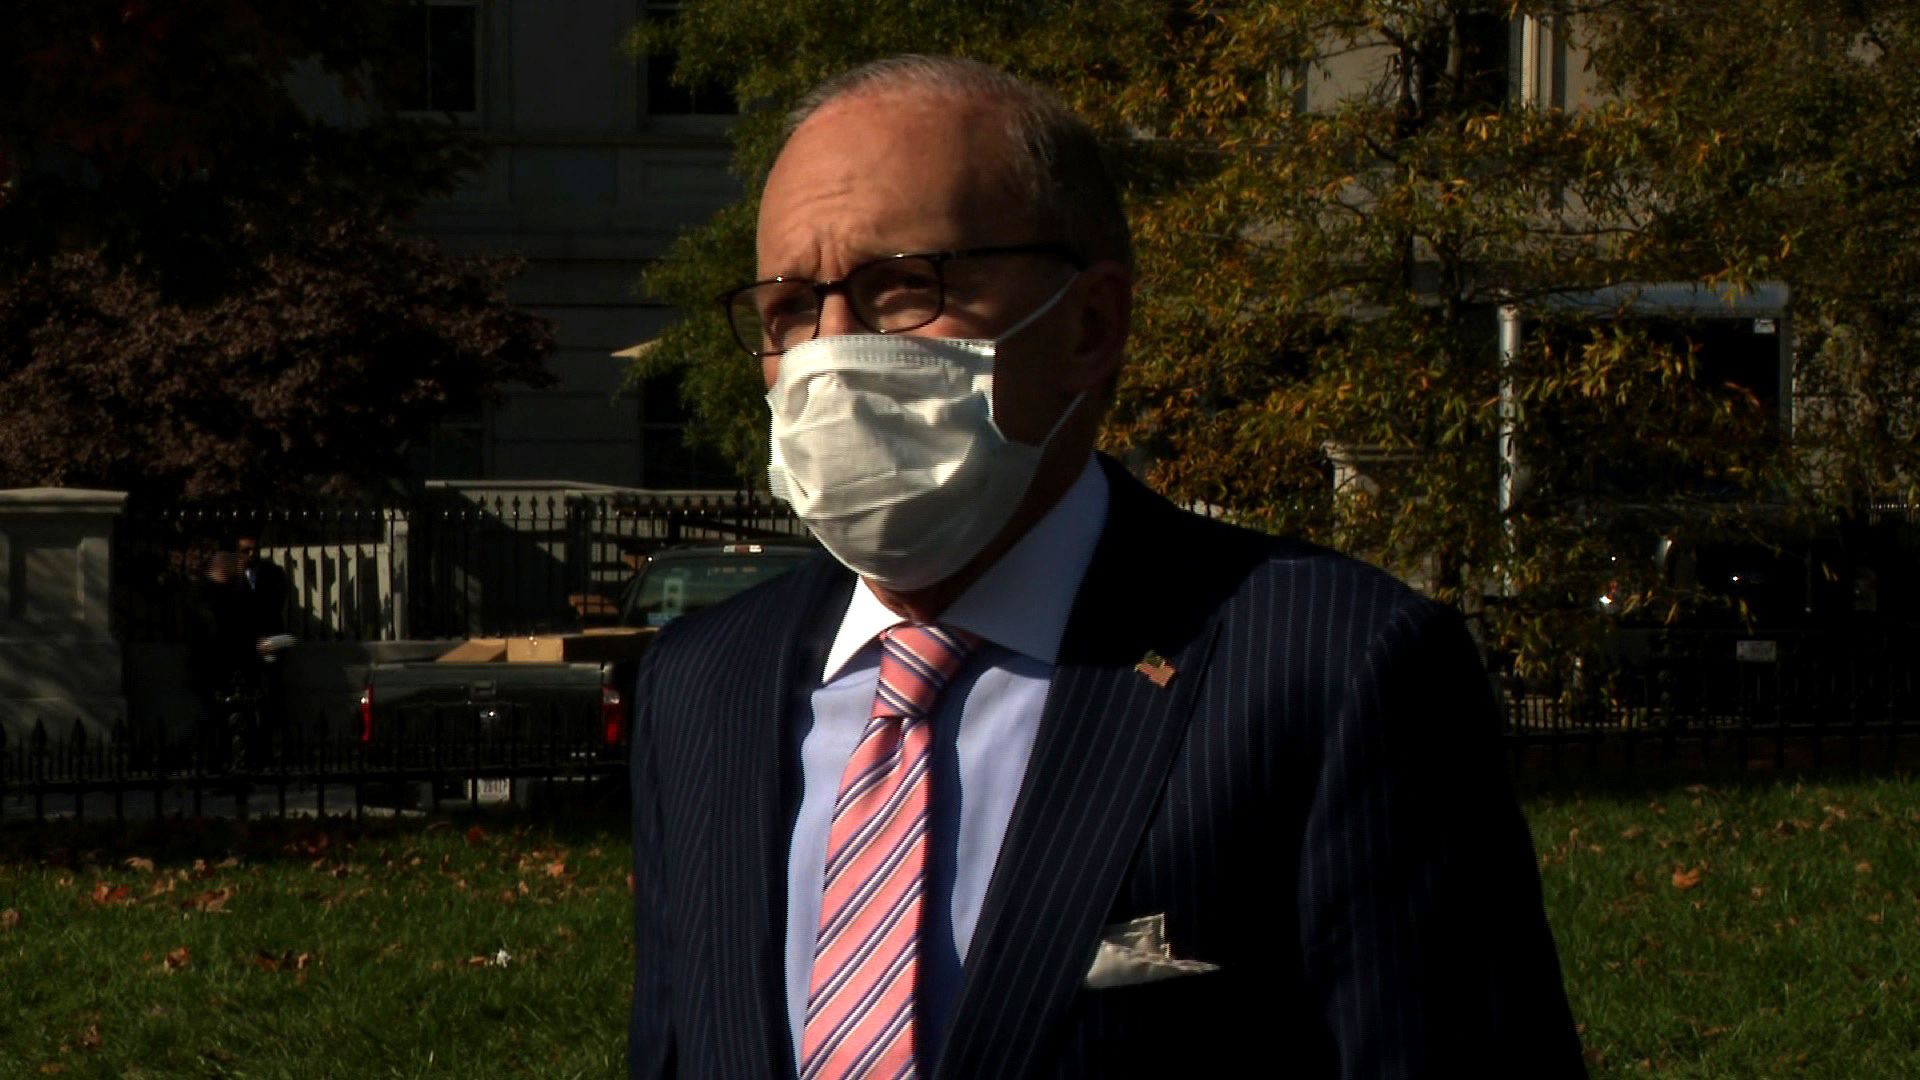 Top Trump economic adviser Larry Kudlow speaks to the press at the White House in Washington, DC, on November 6.